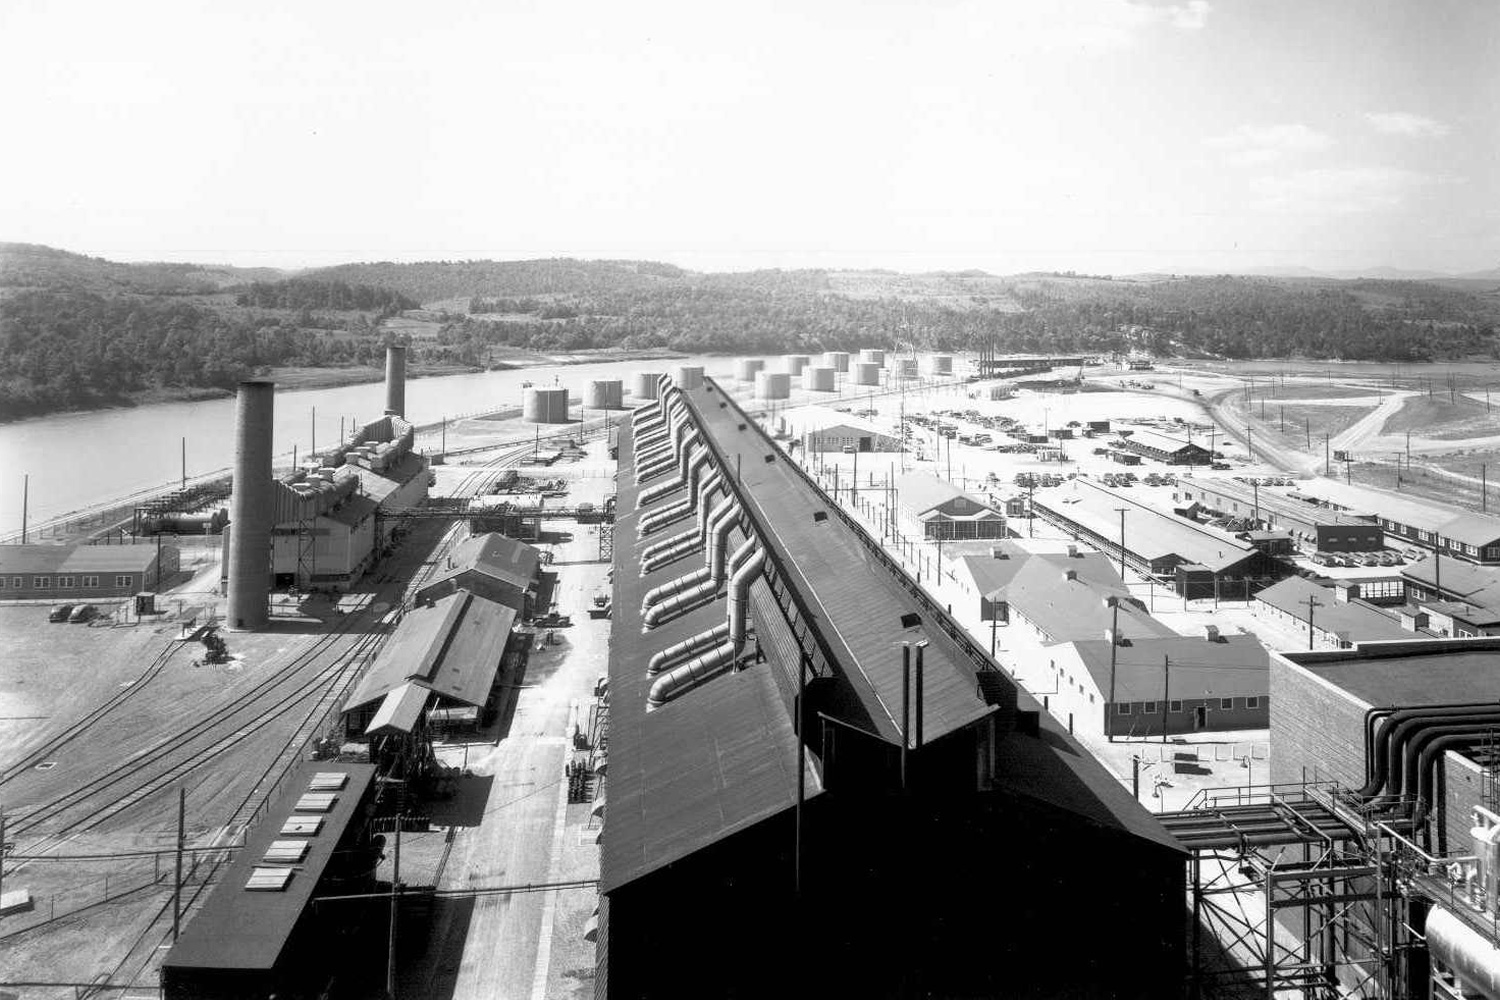 S-50 Process Building from top of K-25 Powerhouse in 1945